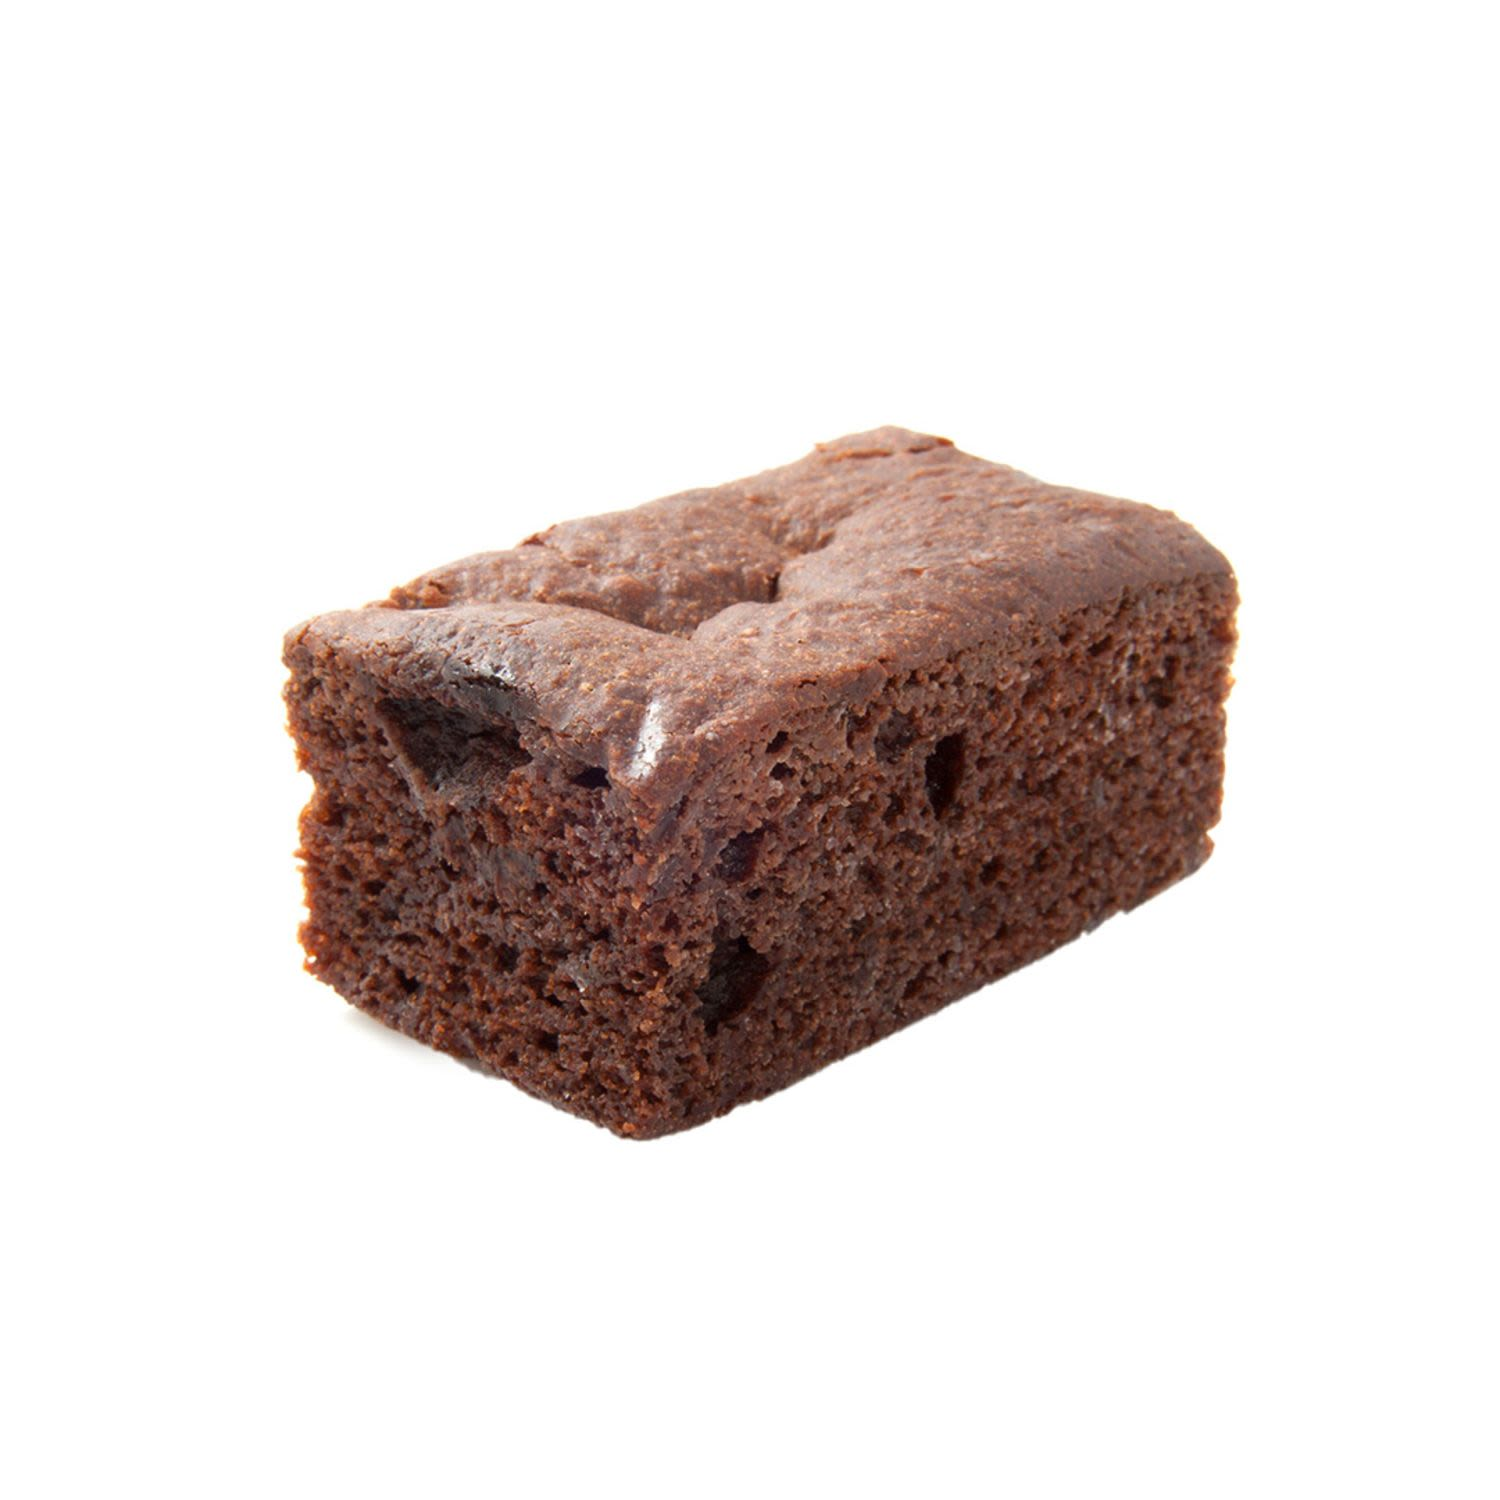 Individually Wrapped Chocolate Muffin Bars, 6 Each